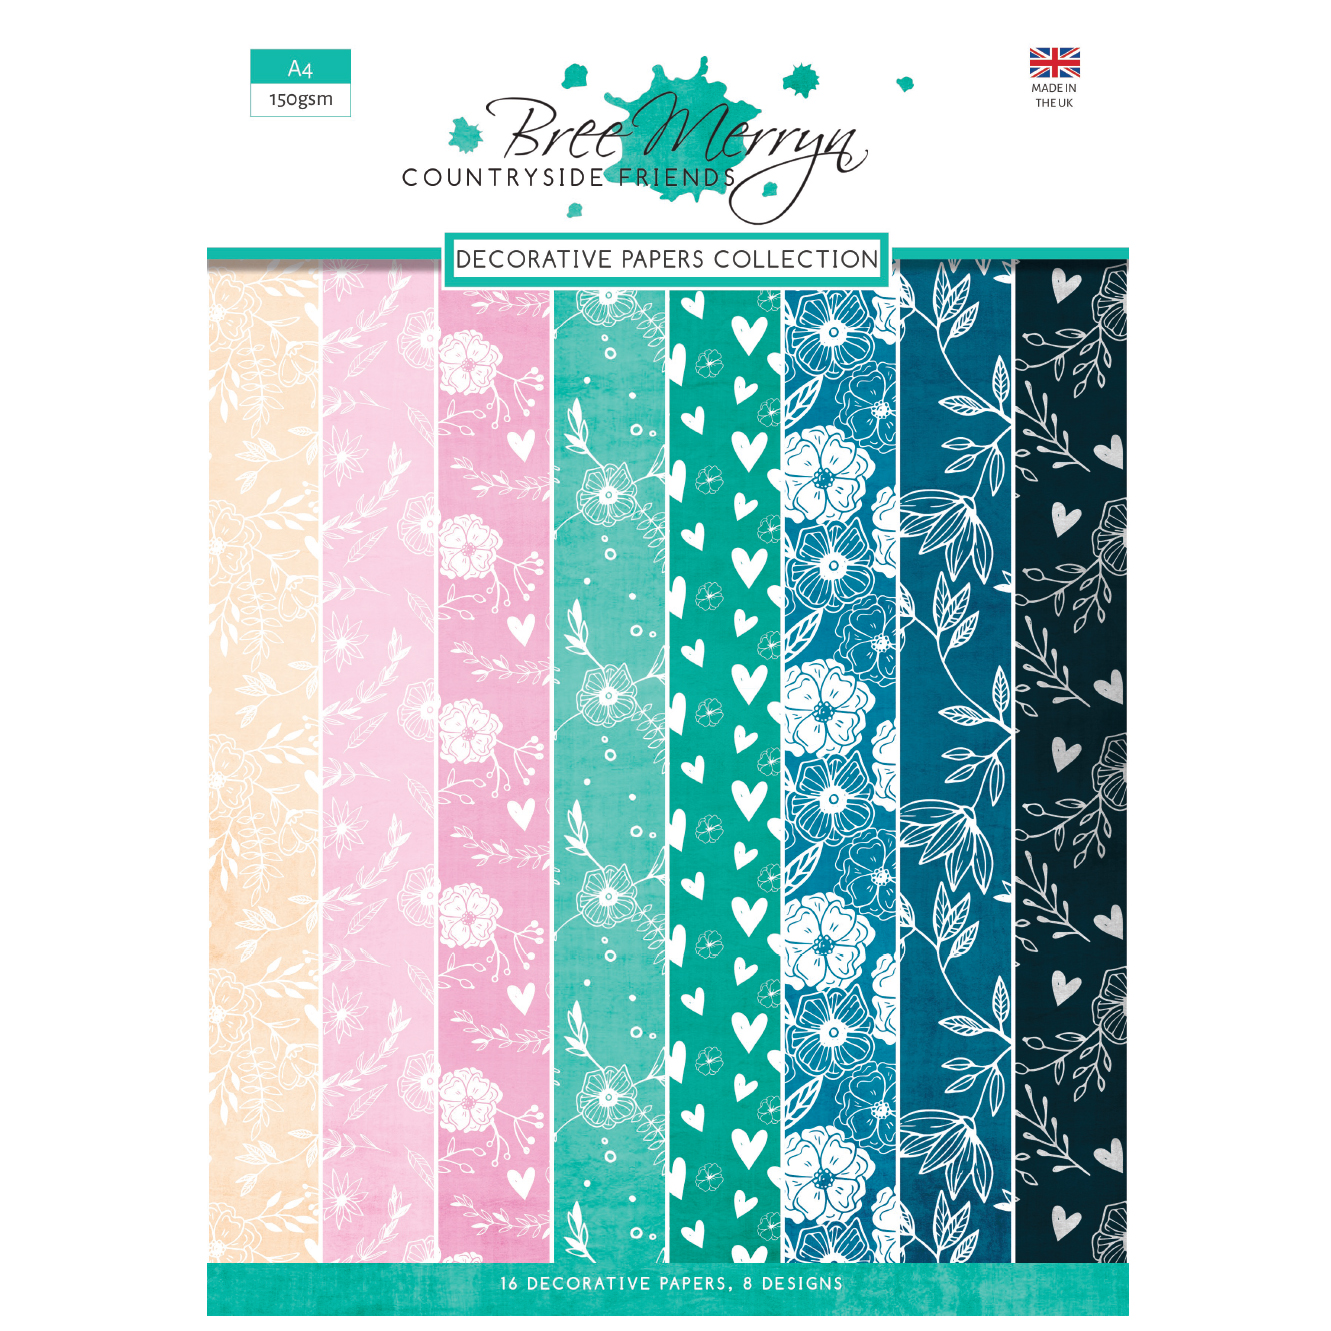 Bree Merryn Countryside Friends A4 Decorative Papers